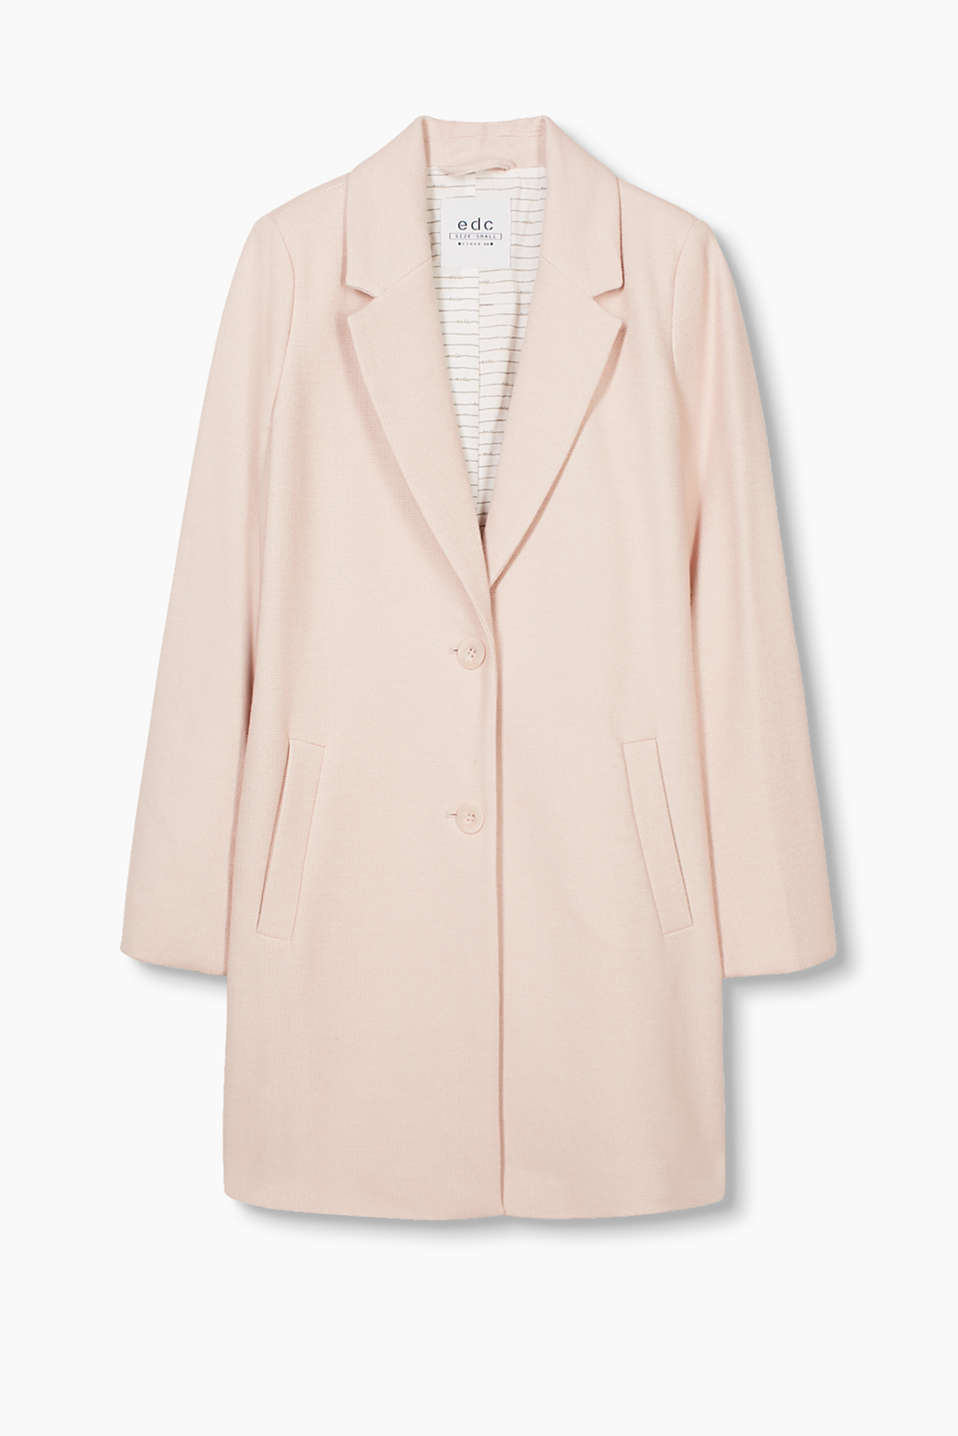 Fashionable two-button blazer coat in a cotton blend with a two-tone texture